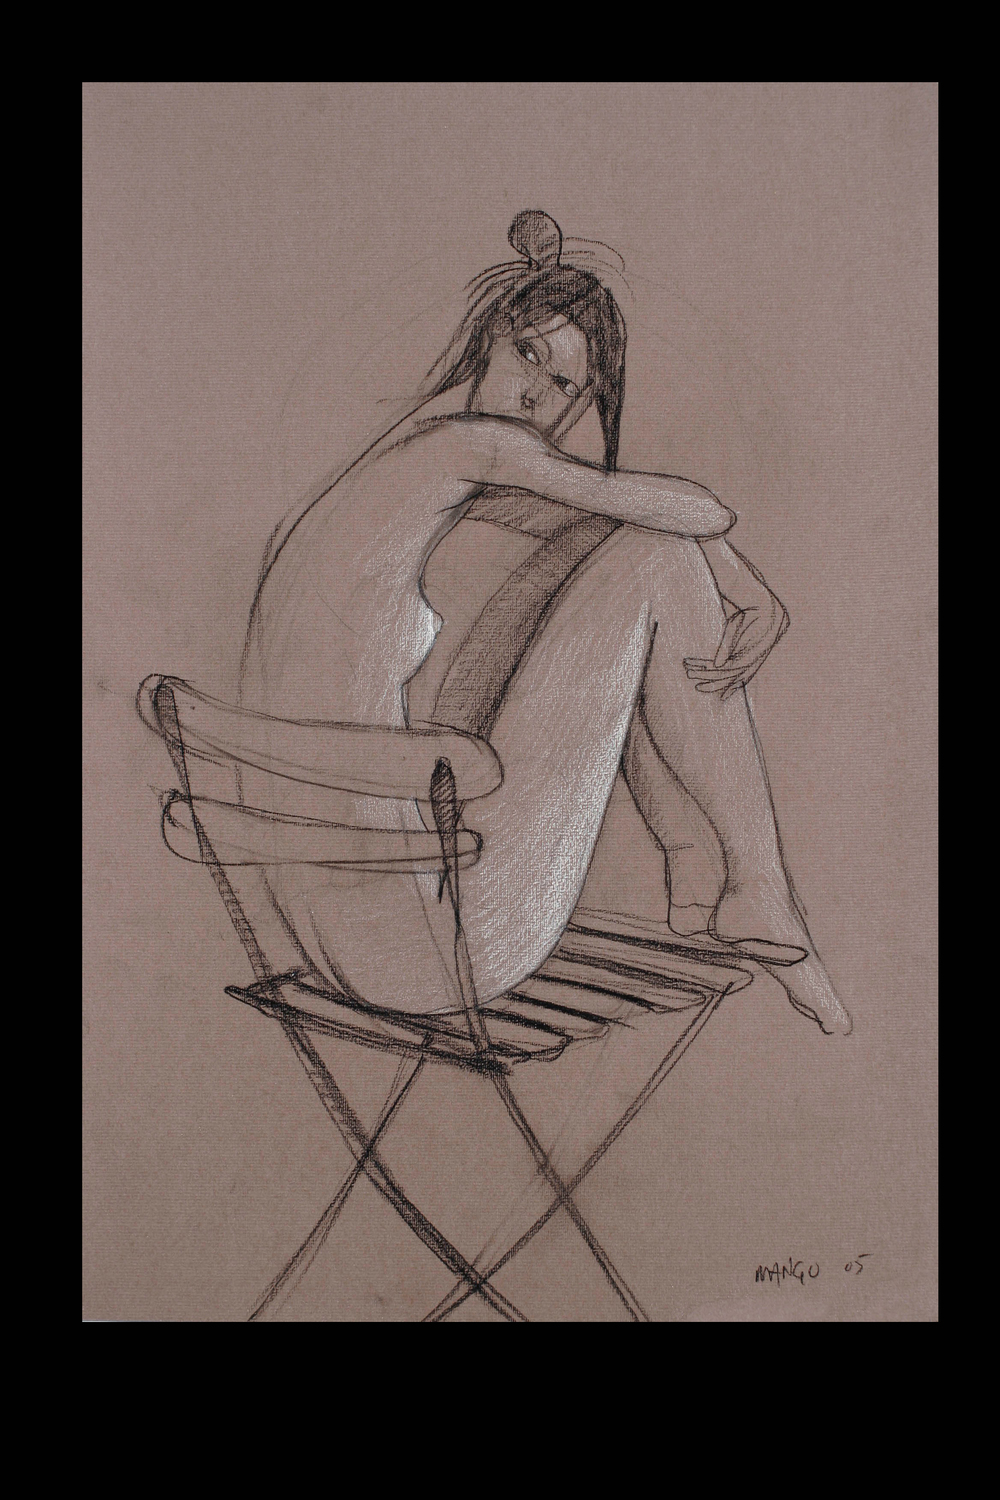 2005  Charcoal on Ingres paper  24x18 in.